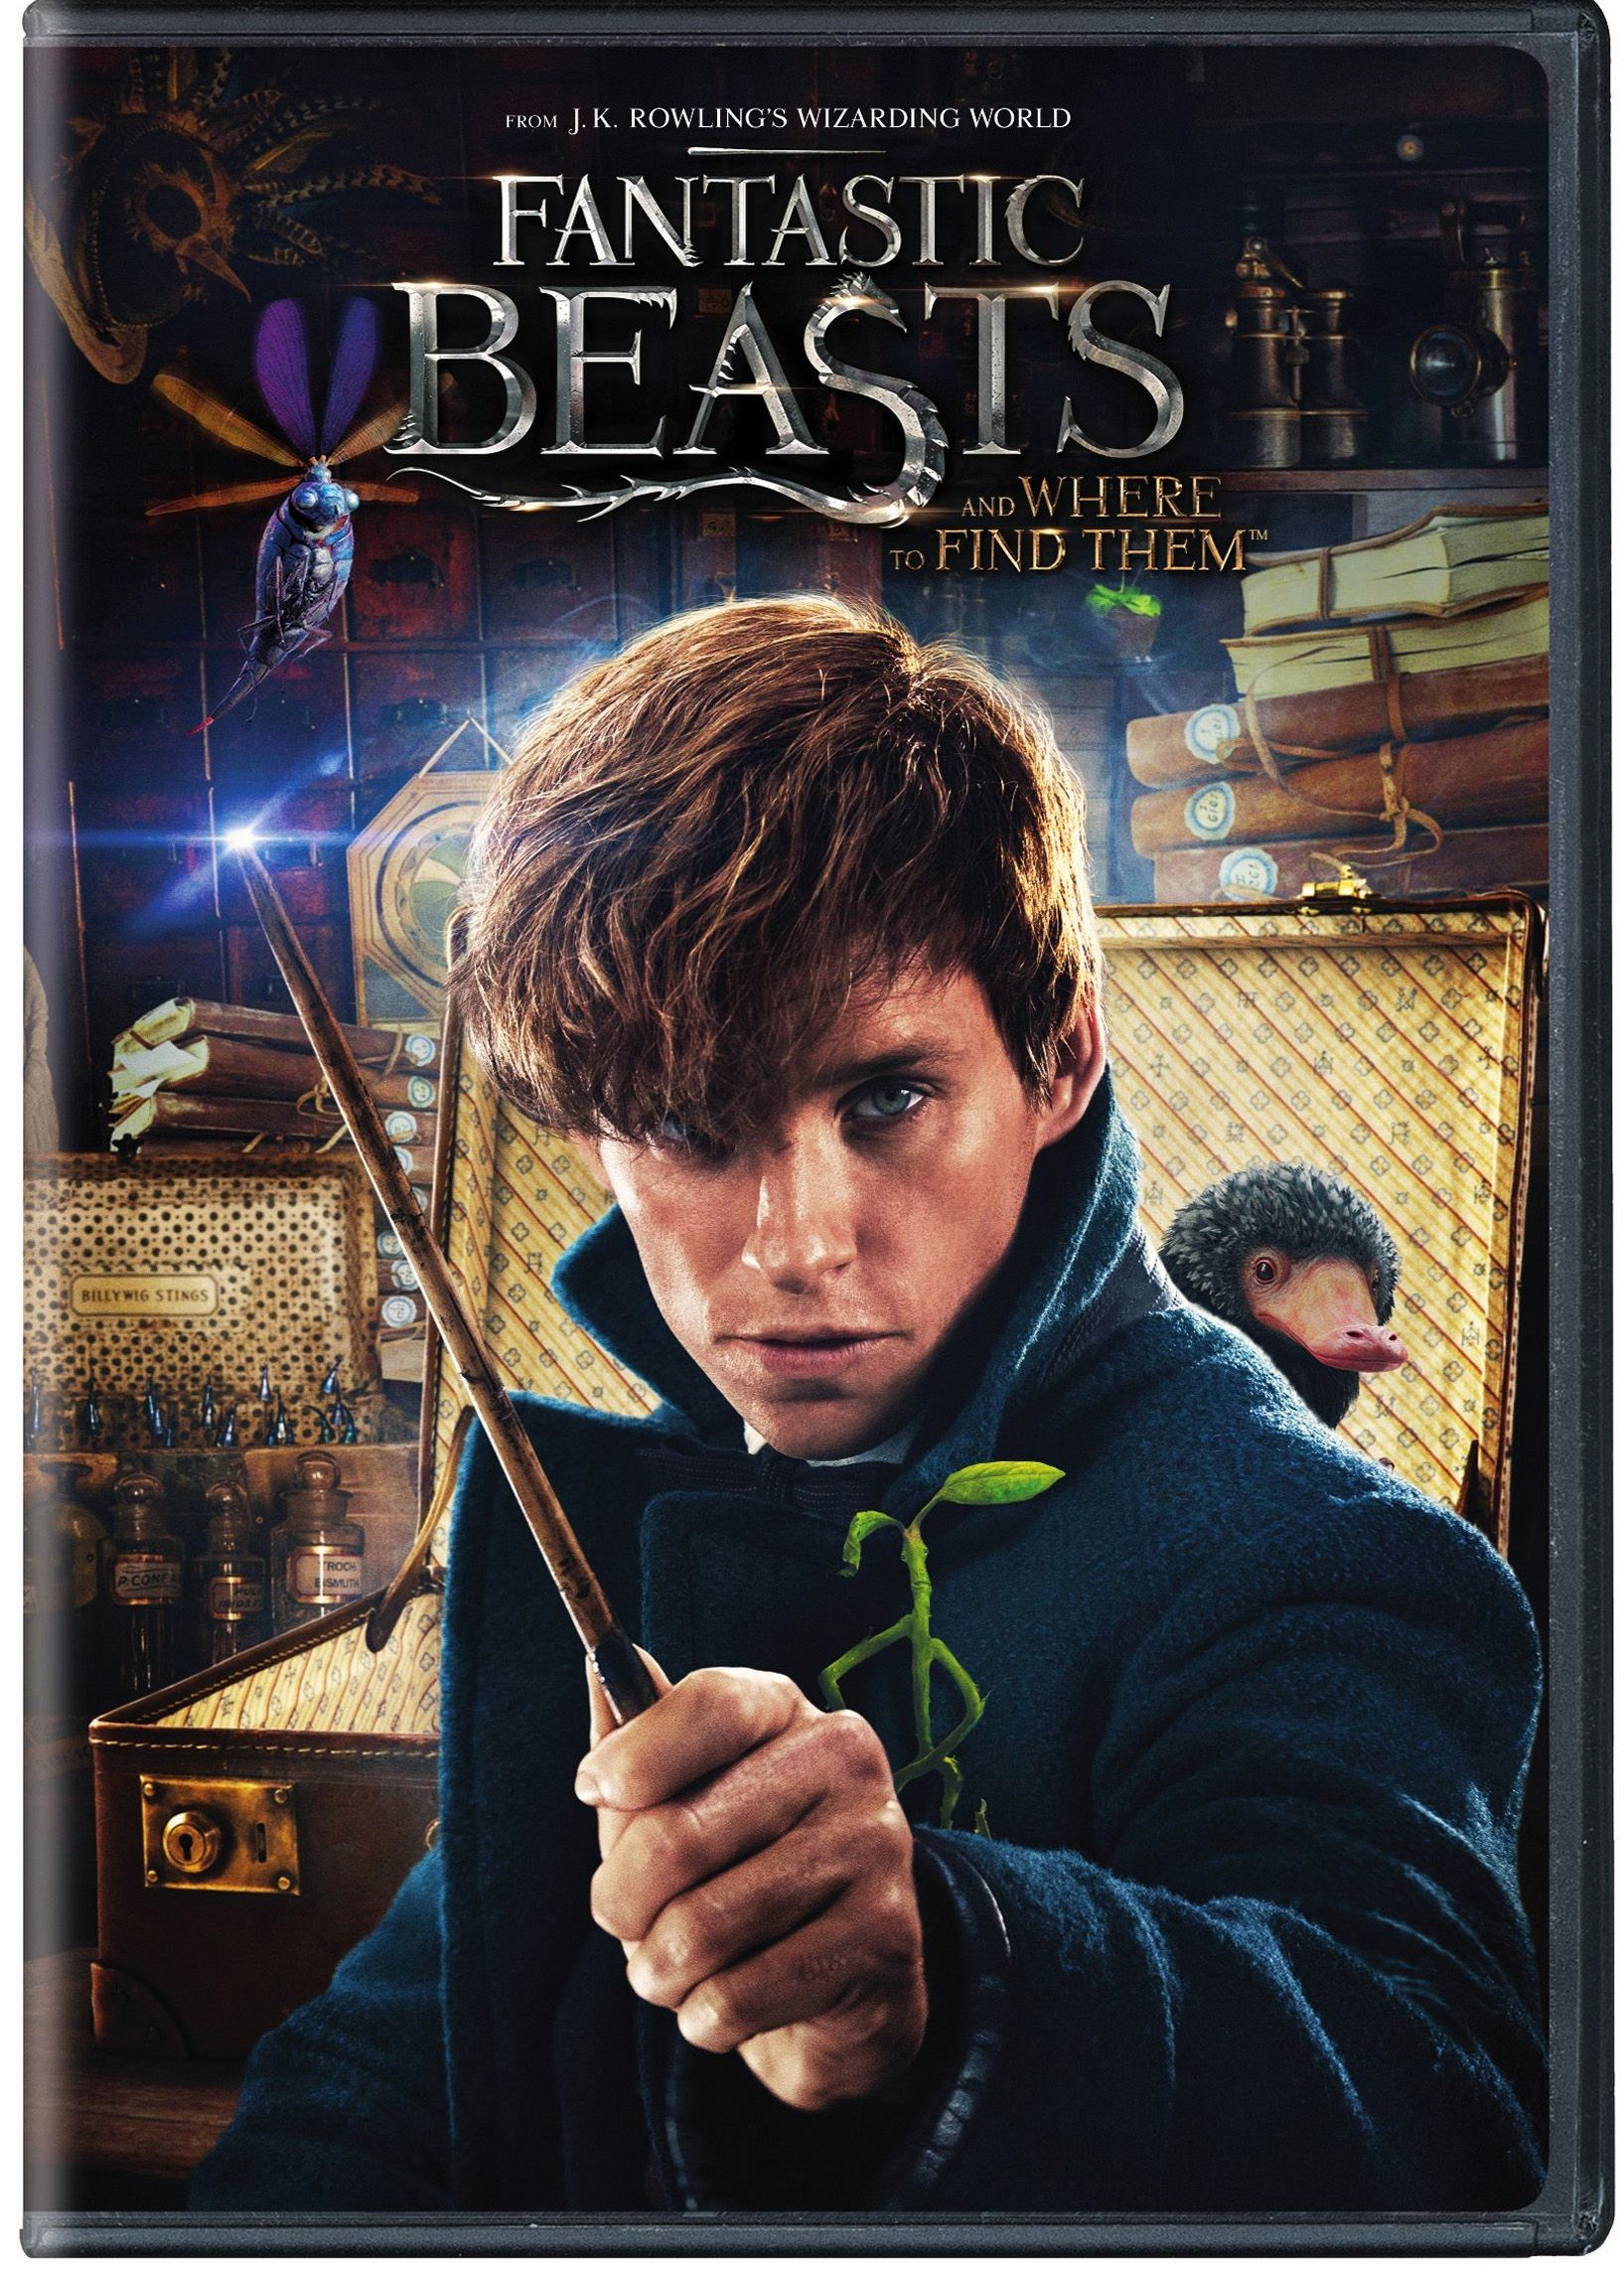 Fantastic Beasts And Where To Find Them (Walmart Exclusive) (DVD)#Find, # Beasts, #Fantastic | Fantastic beasts and where, Fantastic beasts, Full  movies online free